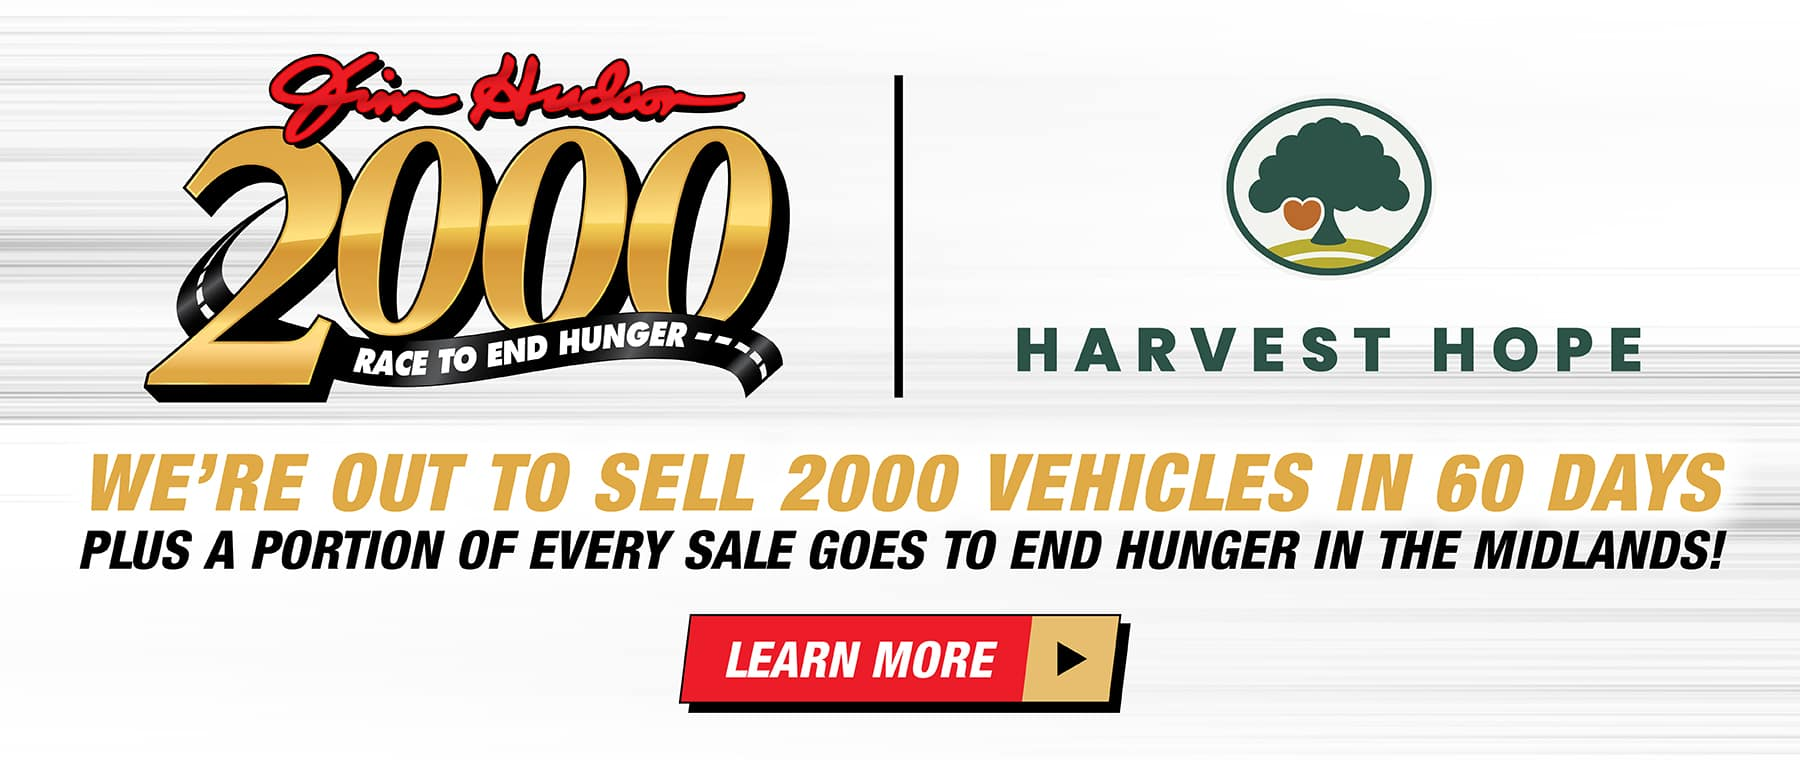 We want to sell 2000 cars